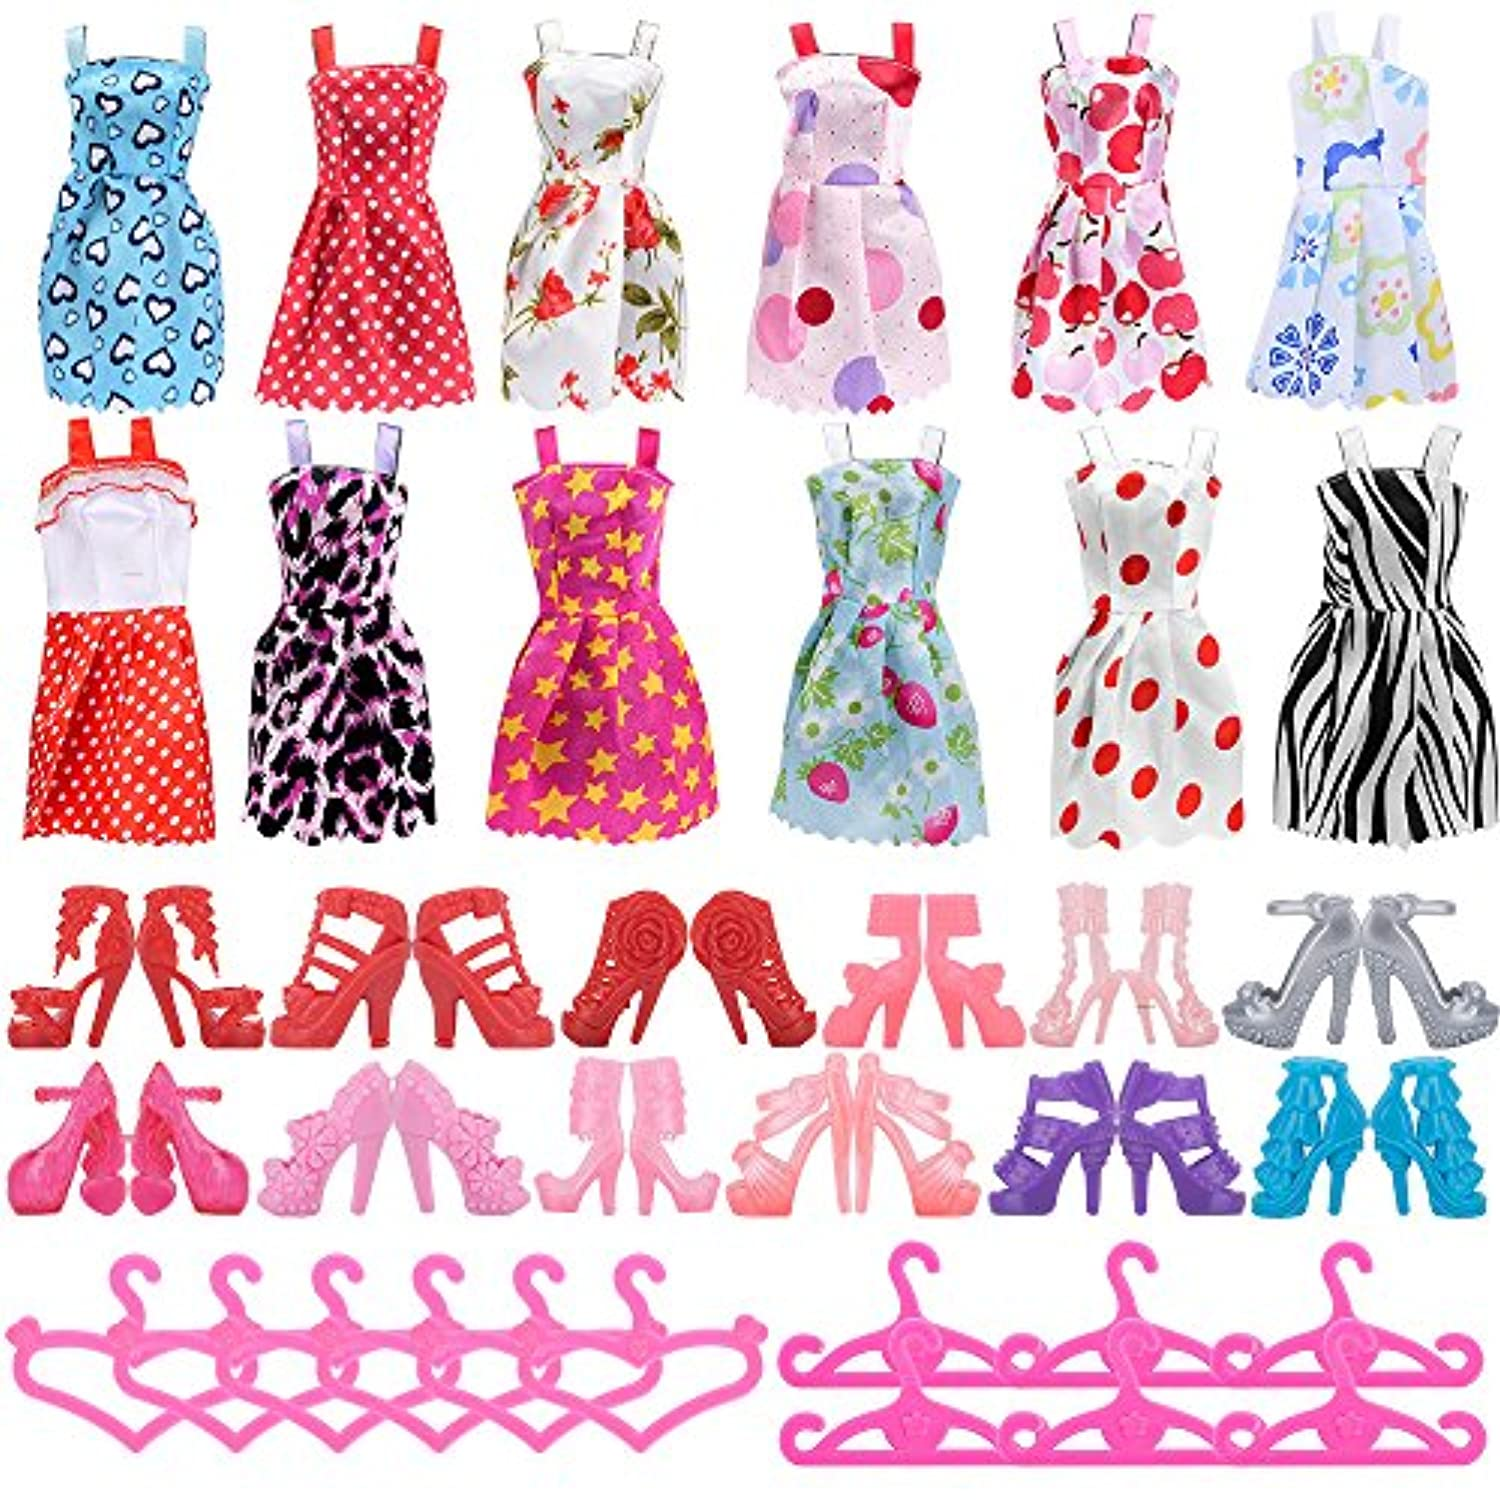 ASIV 12 Dresses, 12 Paris of Shoes & 12 Hangers Accessories for Barbie Gifts for Kid (36 Pieces)